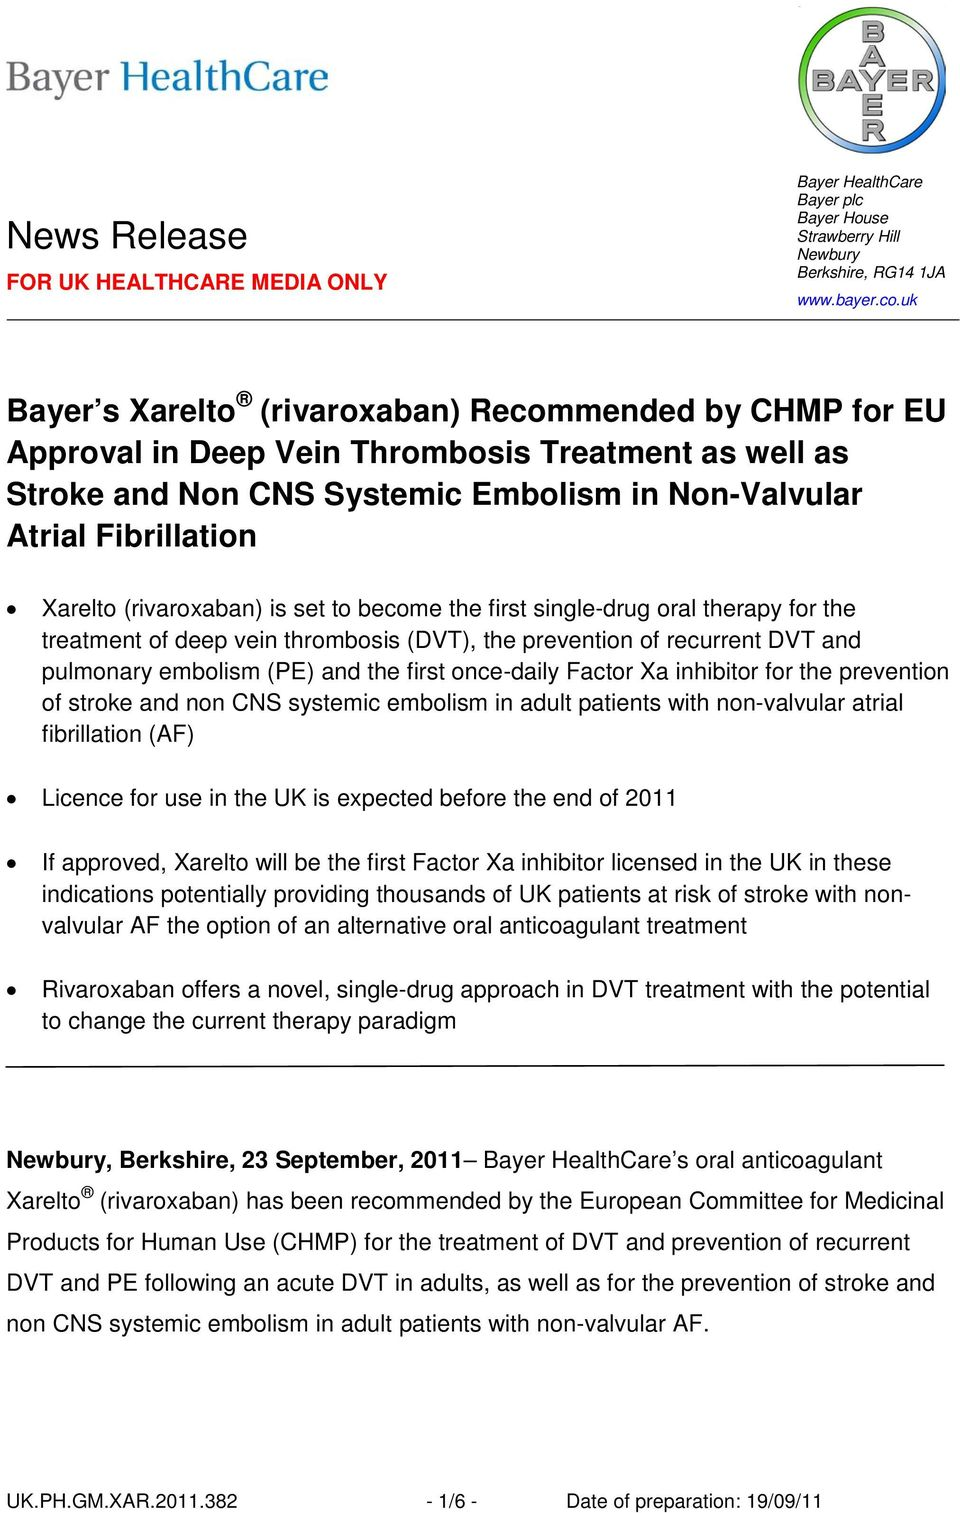 (rivaroxaban) is set to become the first single-drug oral therapy for the treatment of deep vein thrombosis (DVT), the prevention of recurrent DVT and pulmonary embolism (PE) and the first once-daily